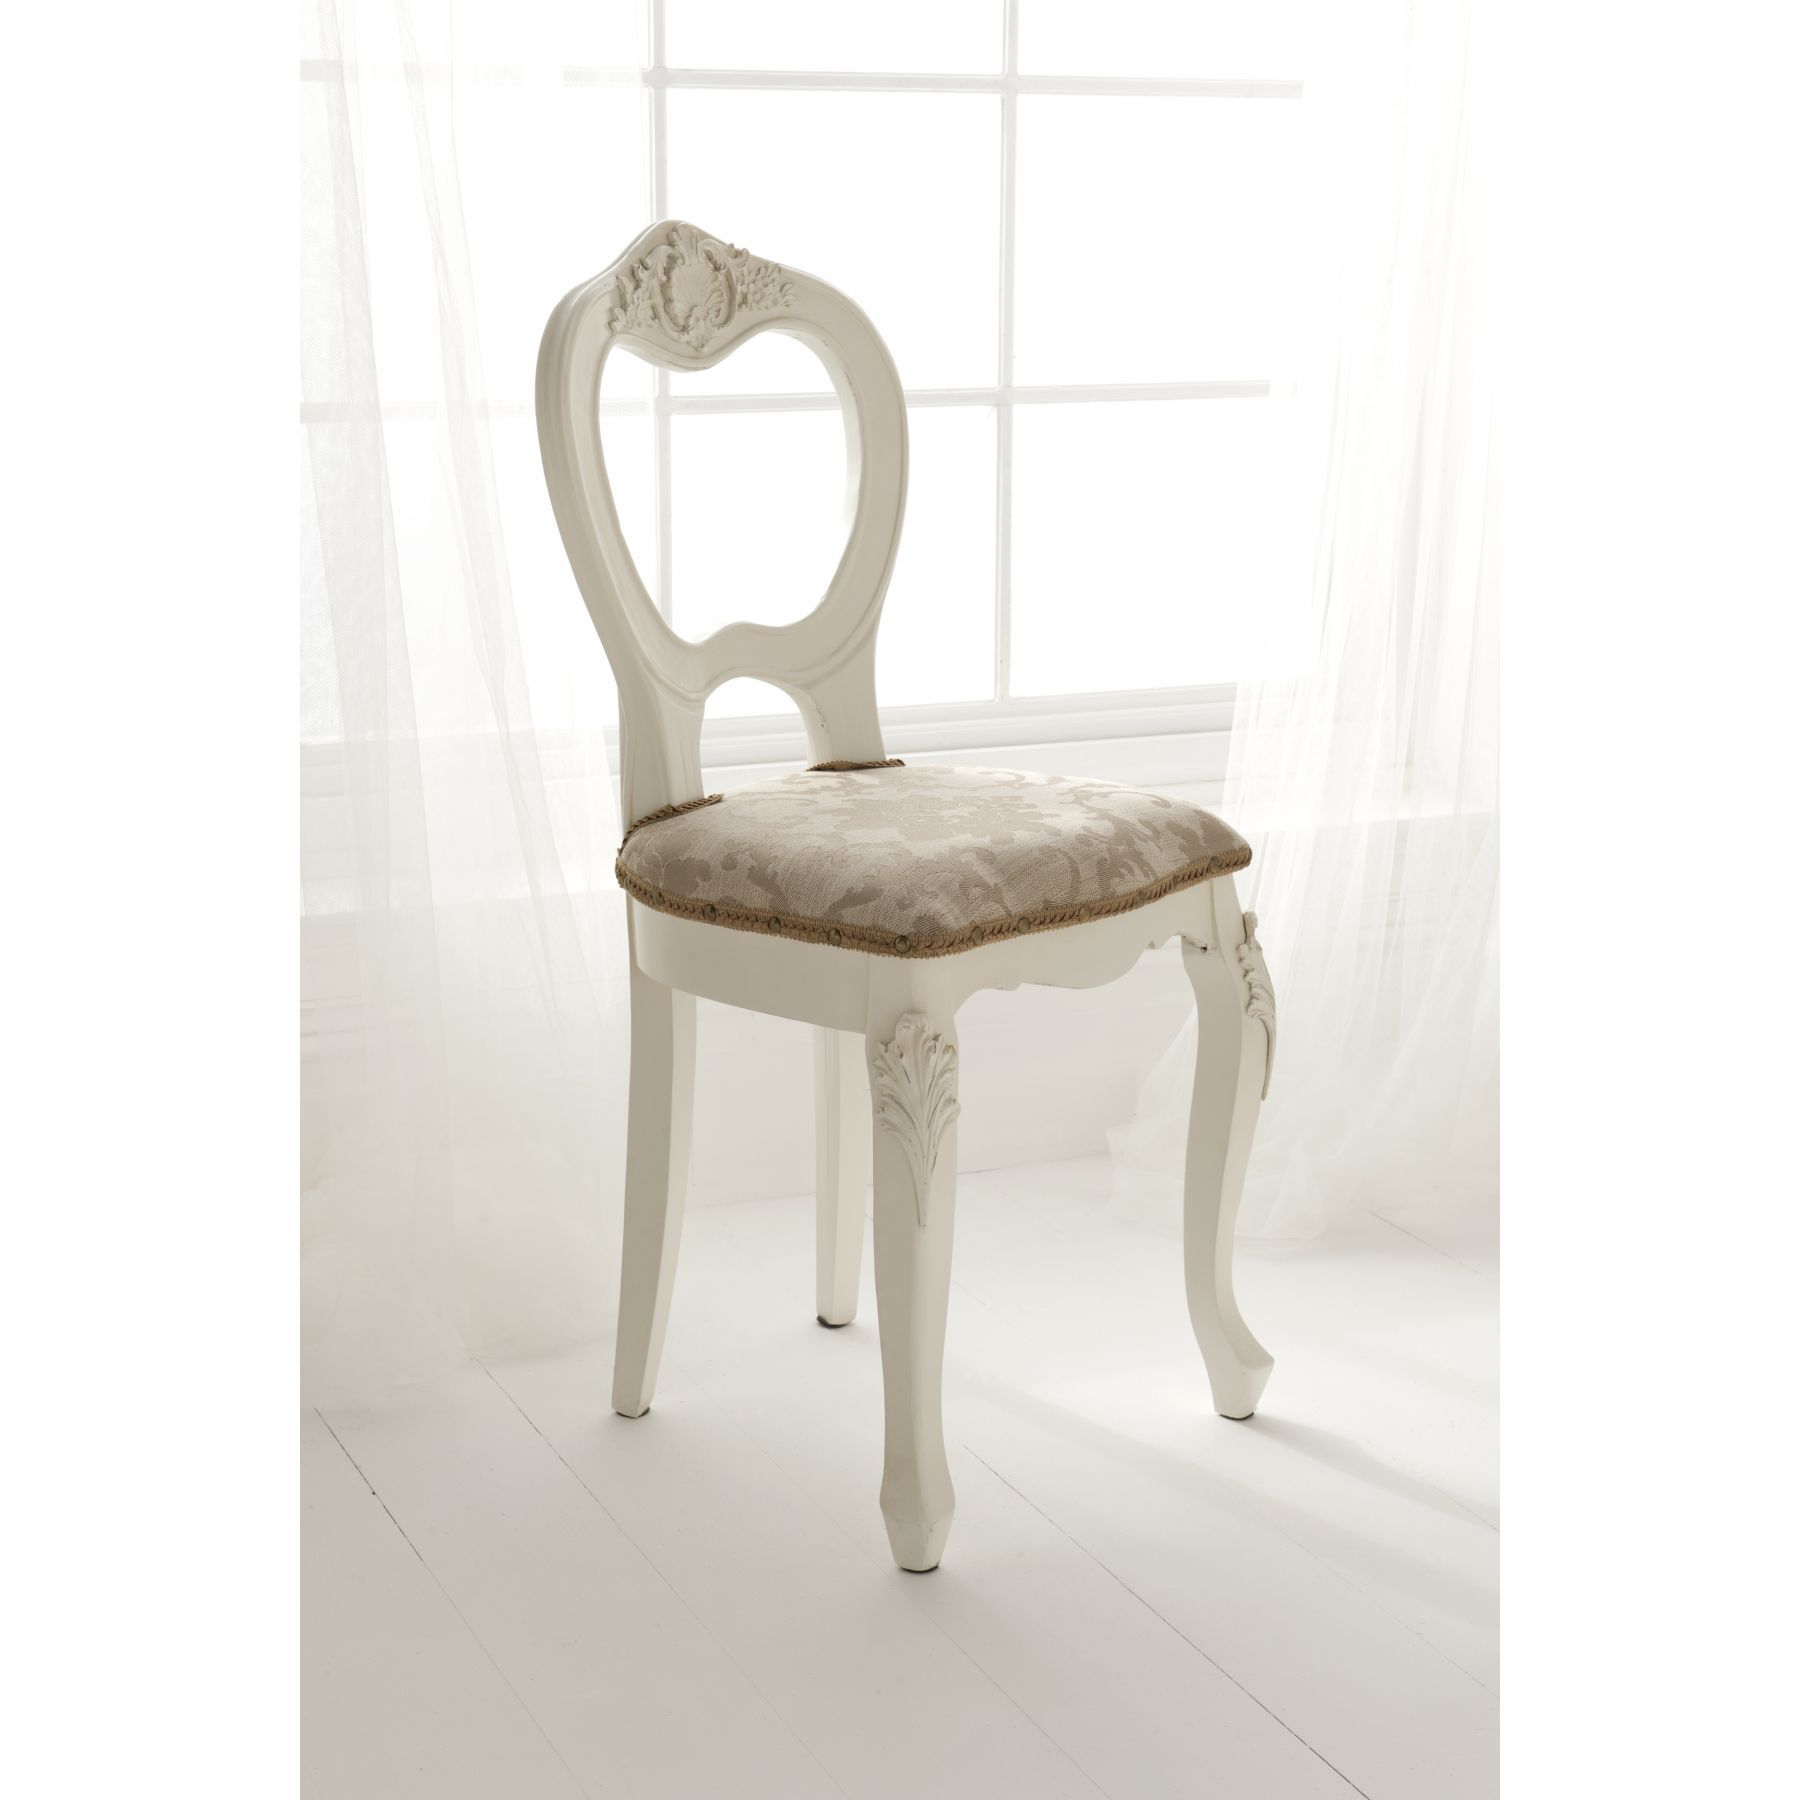 shabby chic furniture nyc. Antique French Chair Is A Wonderful Addition To Our Shabby Chic Furniture Nyc